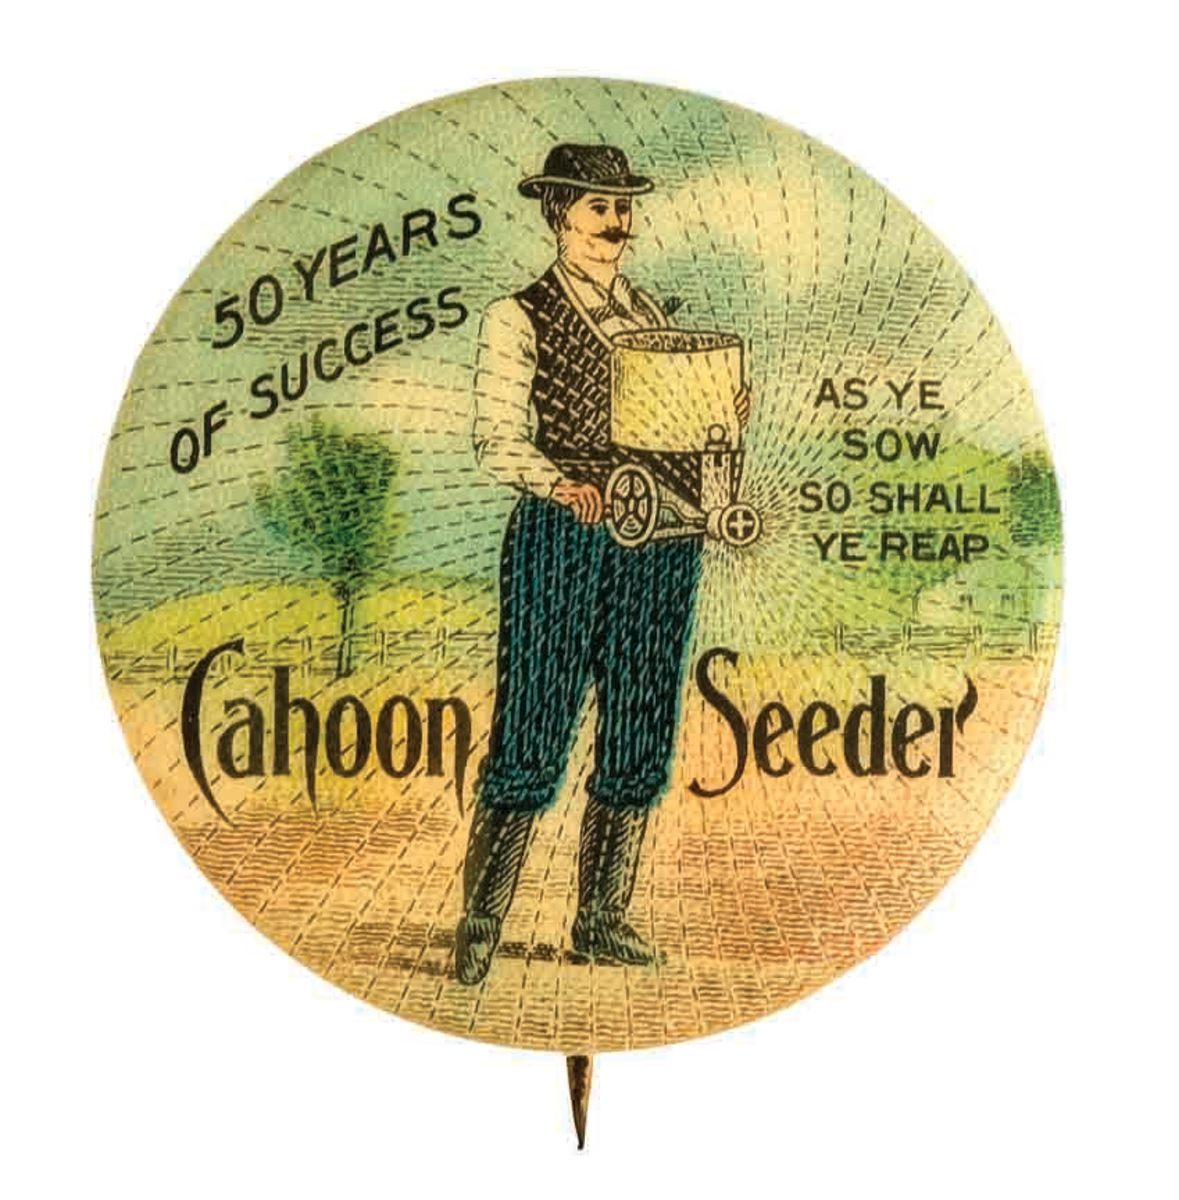 Cahoon's Seed Sower pin-back button, 1861.